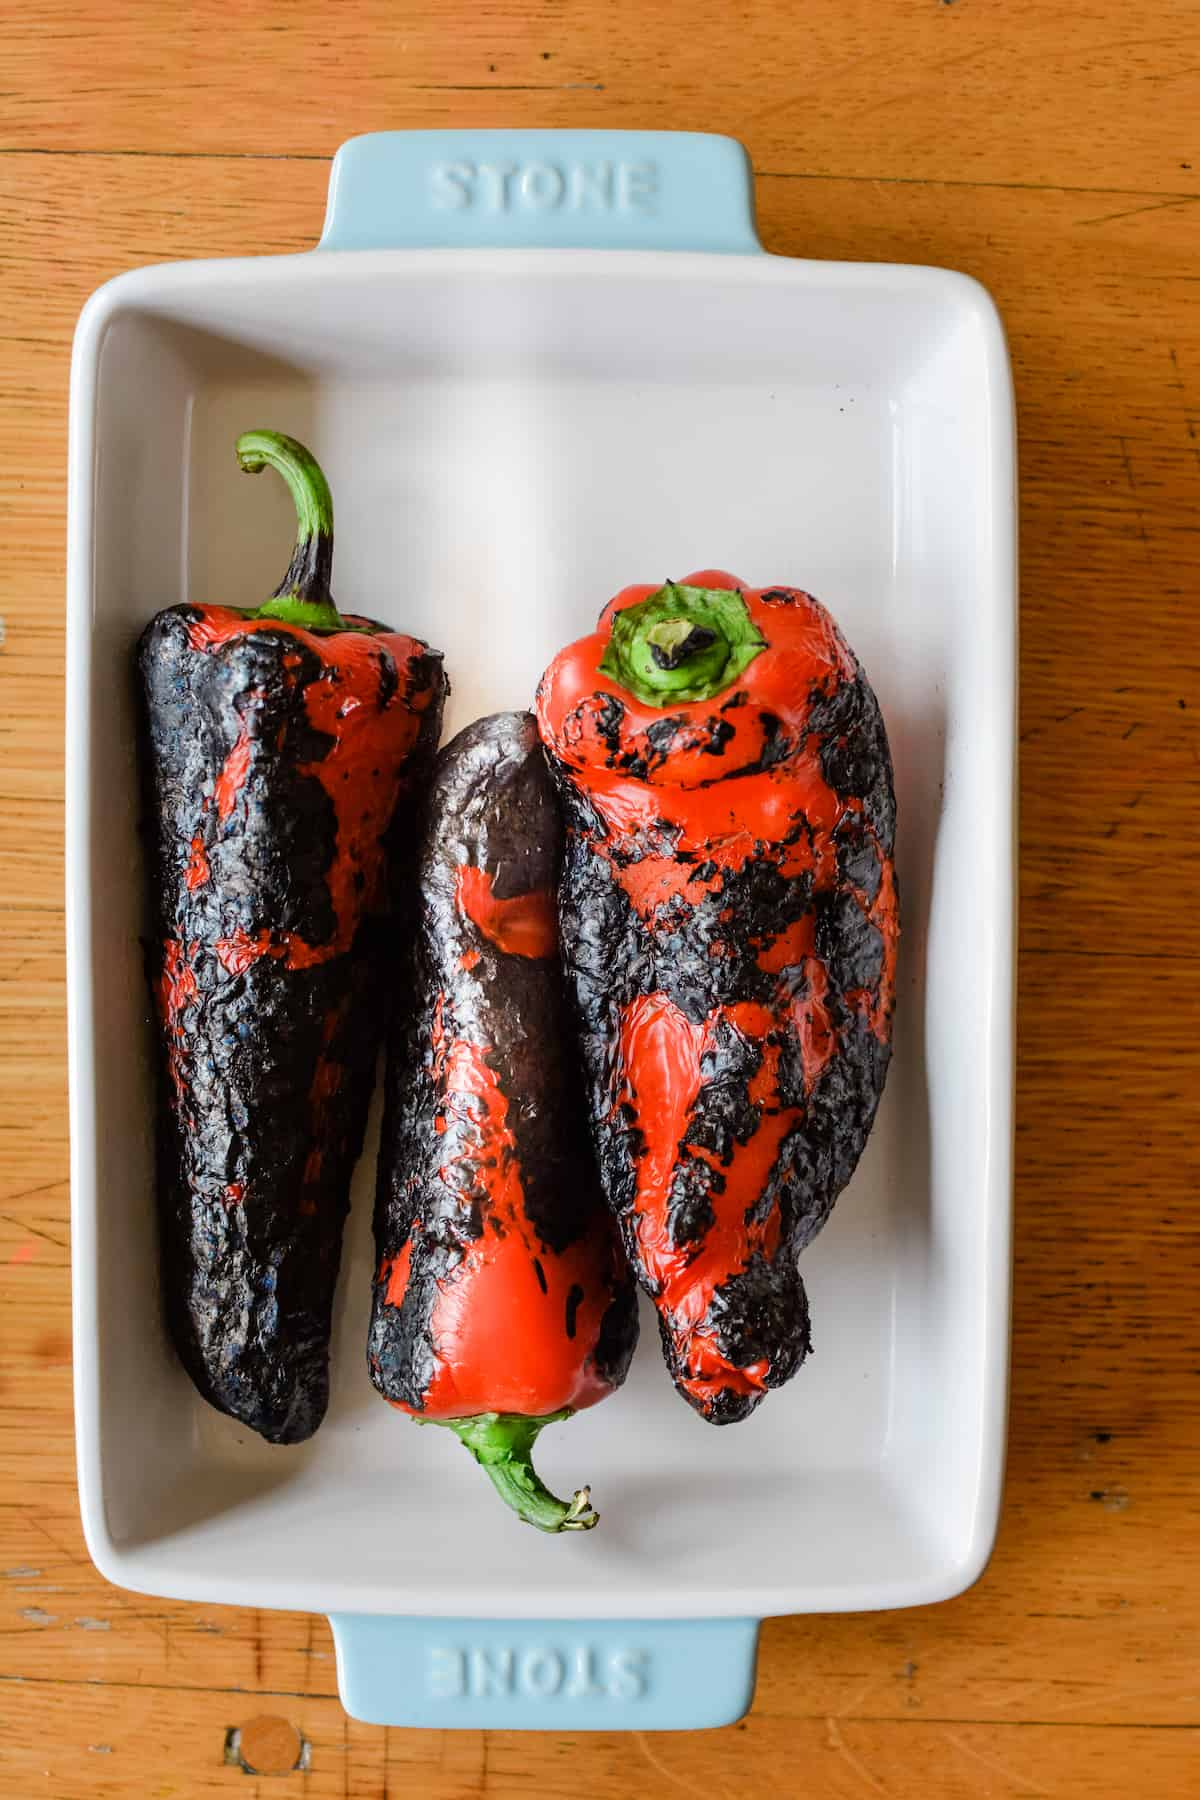 Overhead image of charred, roasted red bell pepper with blackened skin laying in a white ceramic baking dish with blue edges on a wood table.